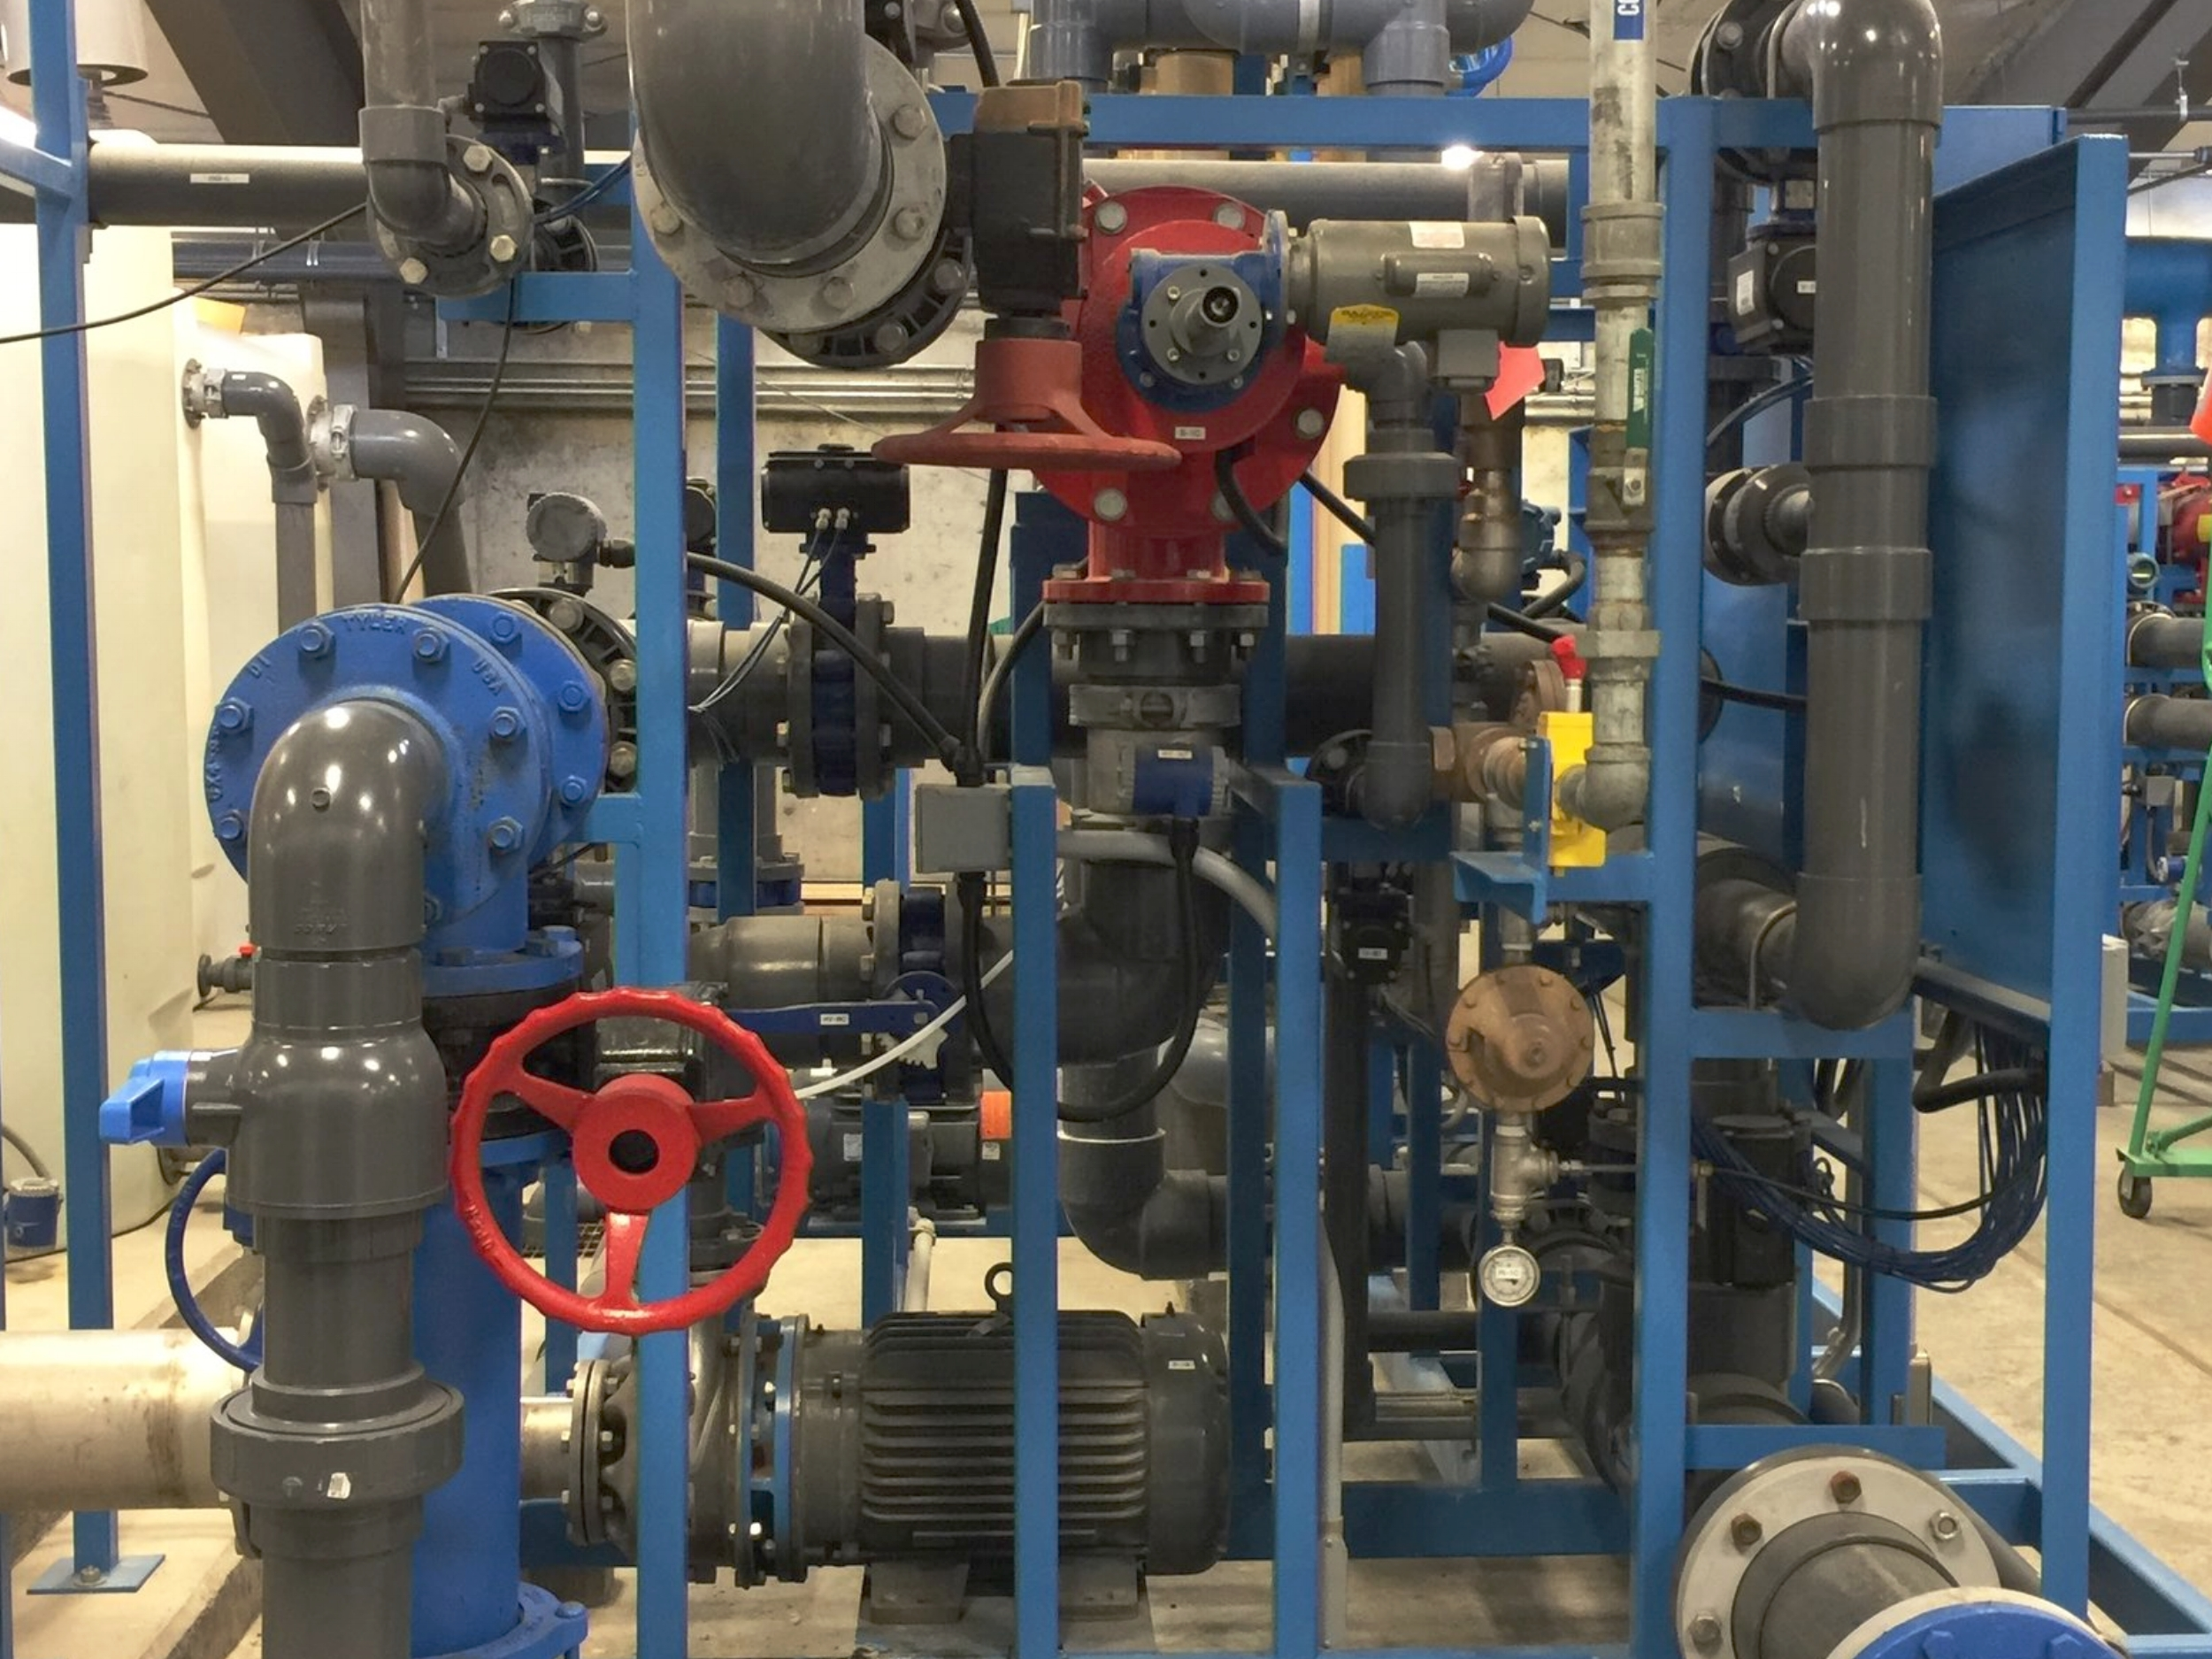 Treatment Skid Manifold (Click photo to learn more!)